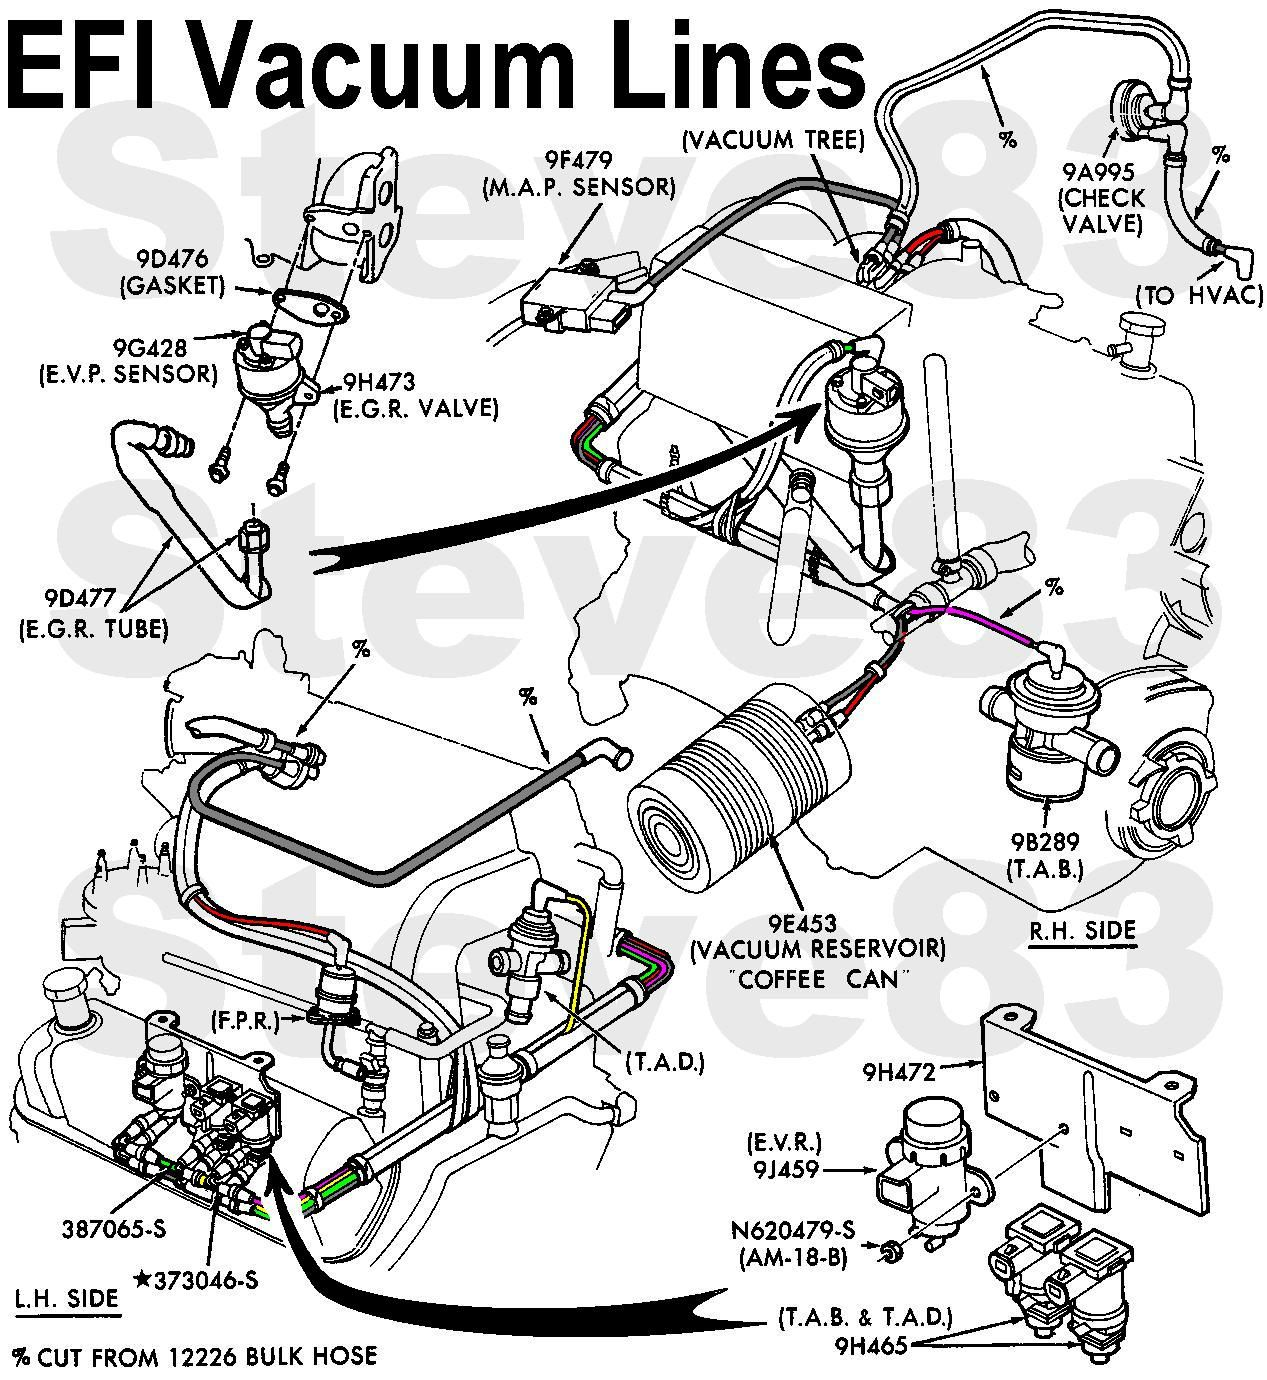 ford f150 engine diagram 1989 04 lariat 4x2 f150 stock 98 nascar rh pinterest com 1995 F150 5.0 Engine Diagram Engine Wire Diagram for 2001 F150